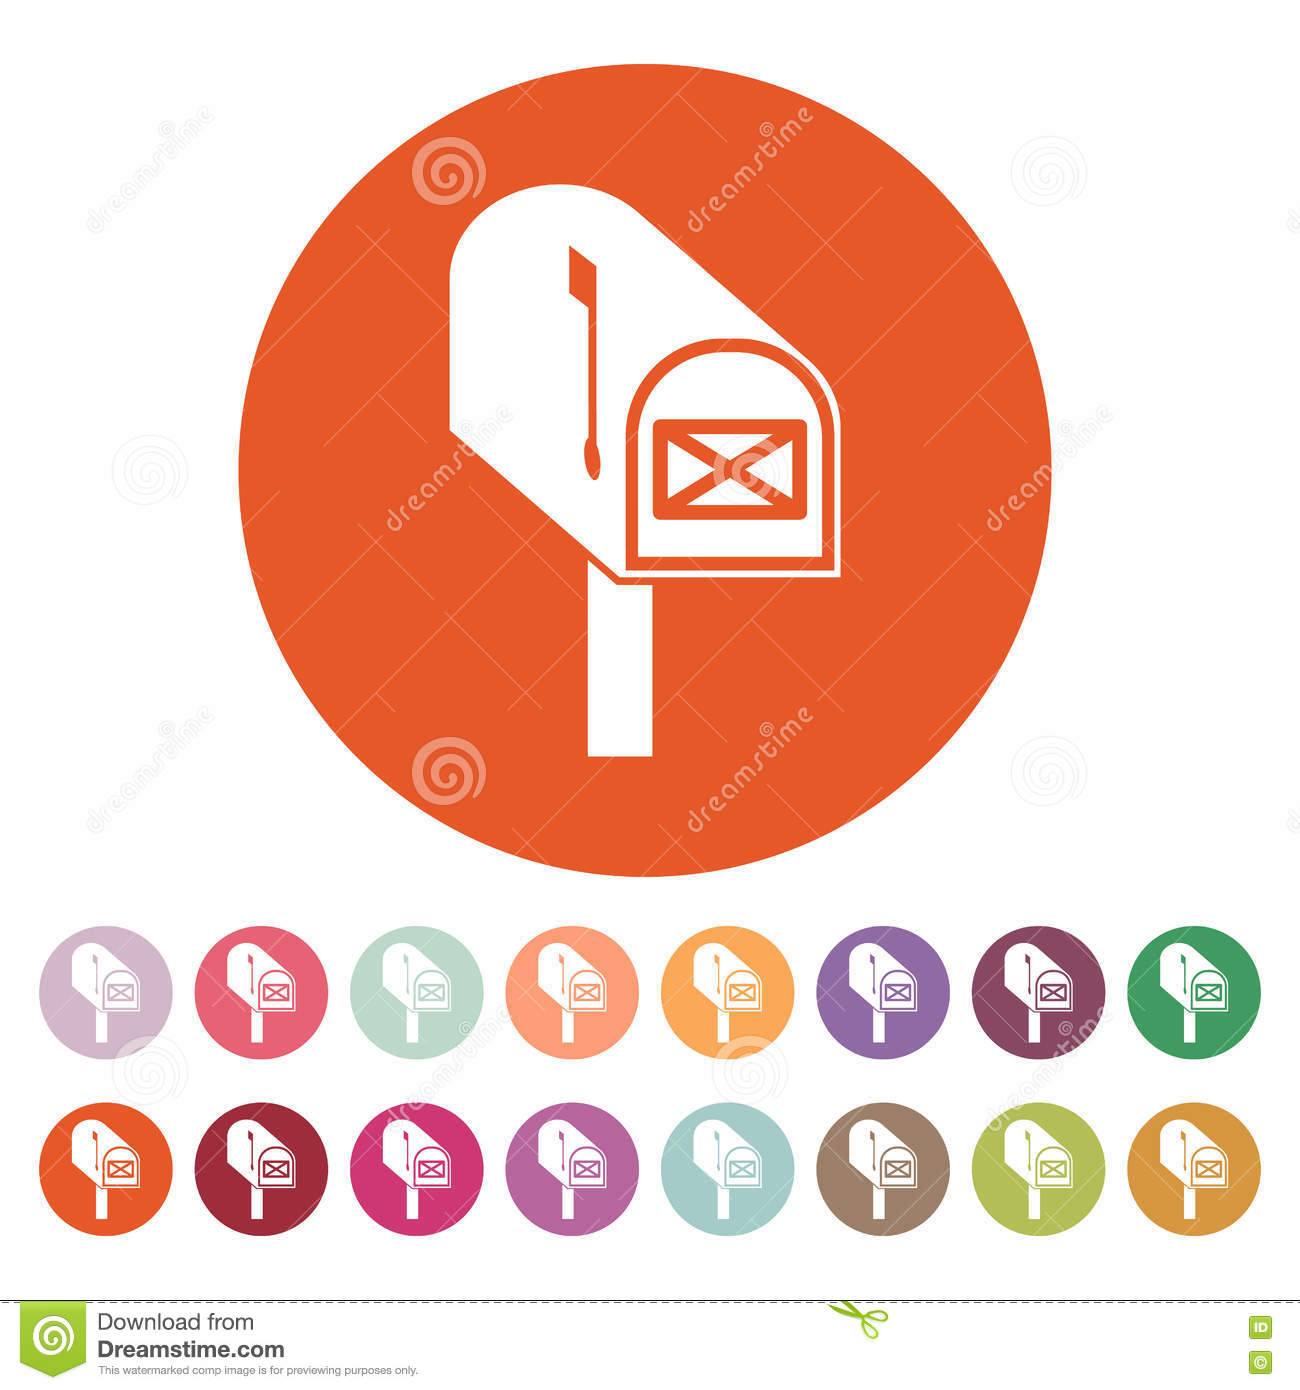 The Mailbox Icon. Mail, Postal, Post Office Symbol. Flat